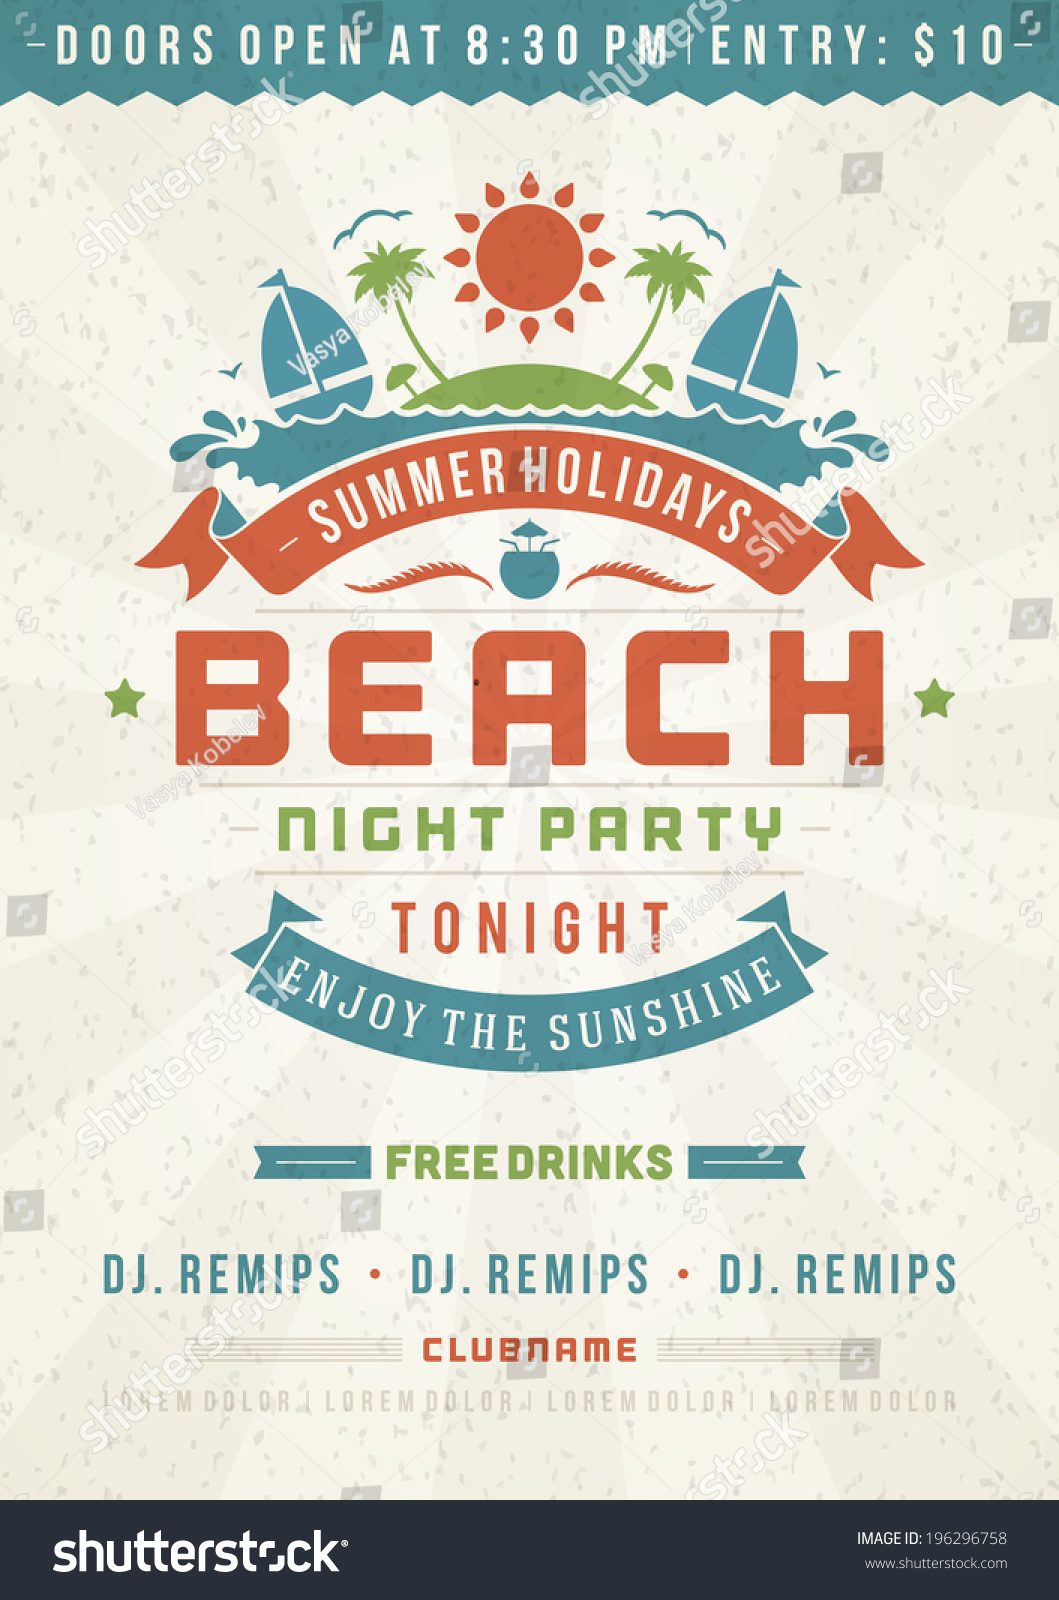 retro summer party design poster flyer stock vector  retro summer party design poster or flyer night club event typography vector template illustration